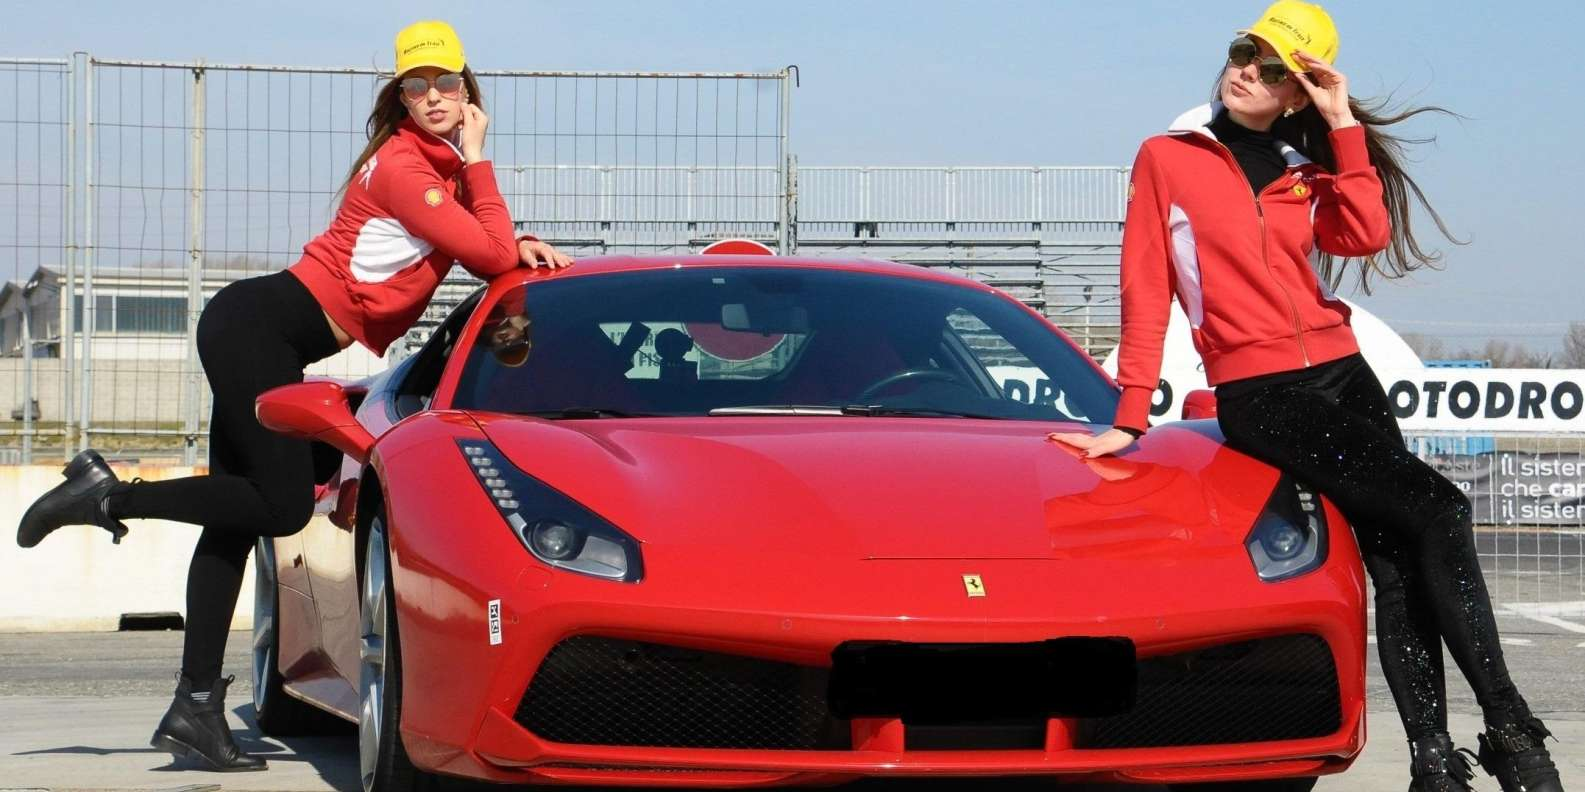 Milan Test Drive A Ferrari 488 On A Race Track Getyourguide